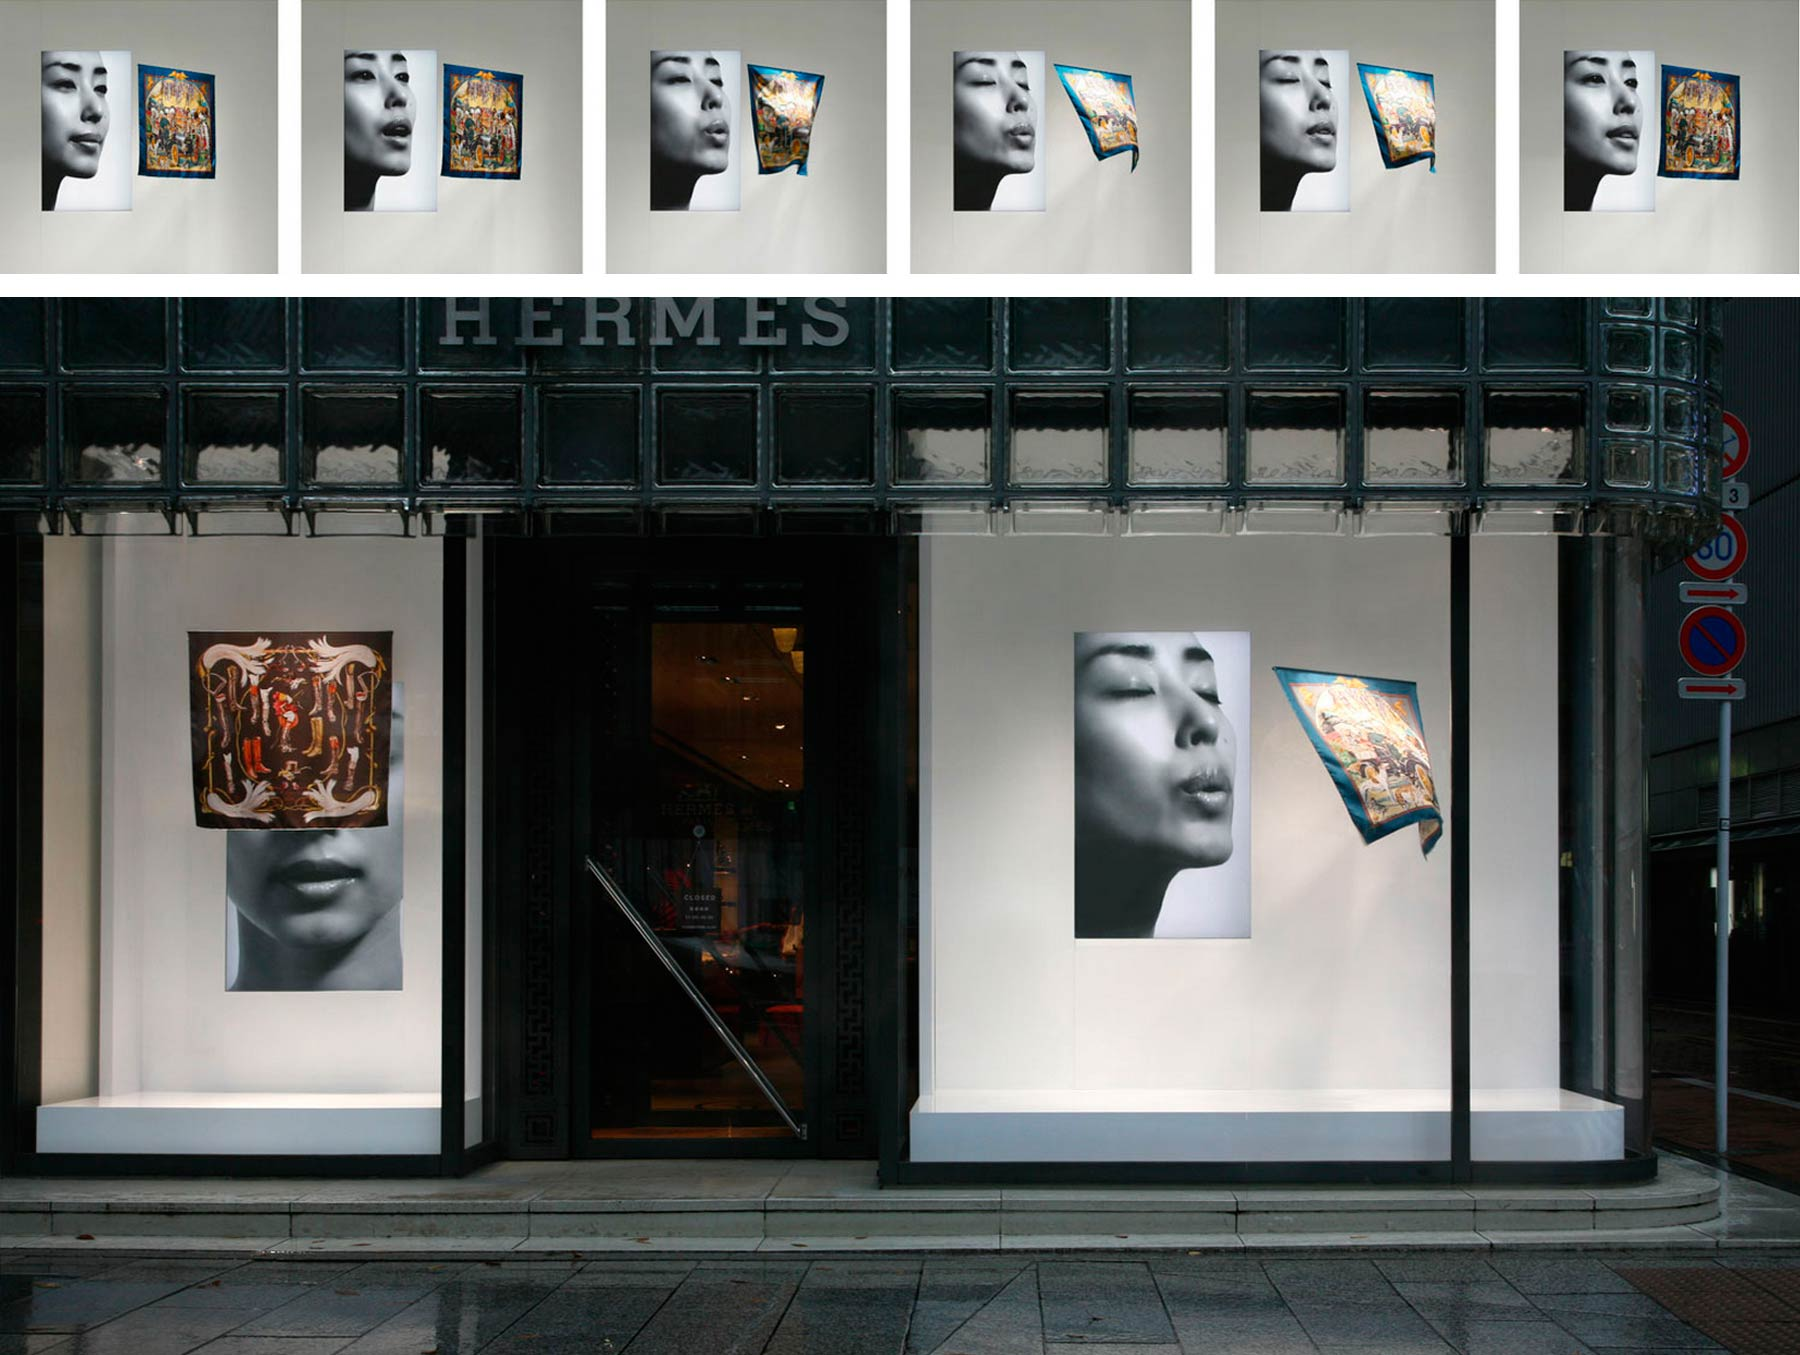 A shop window with television screens and kerchiefs hanging. The image on the screen is a woman's face blowing. The kerchief is animated by the woman's blow out.